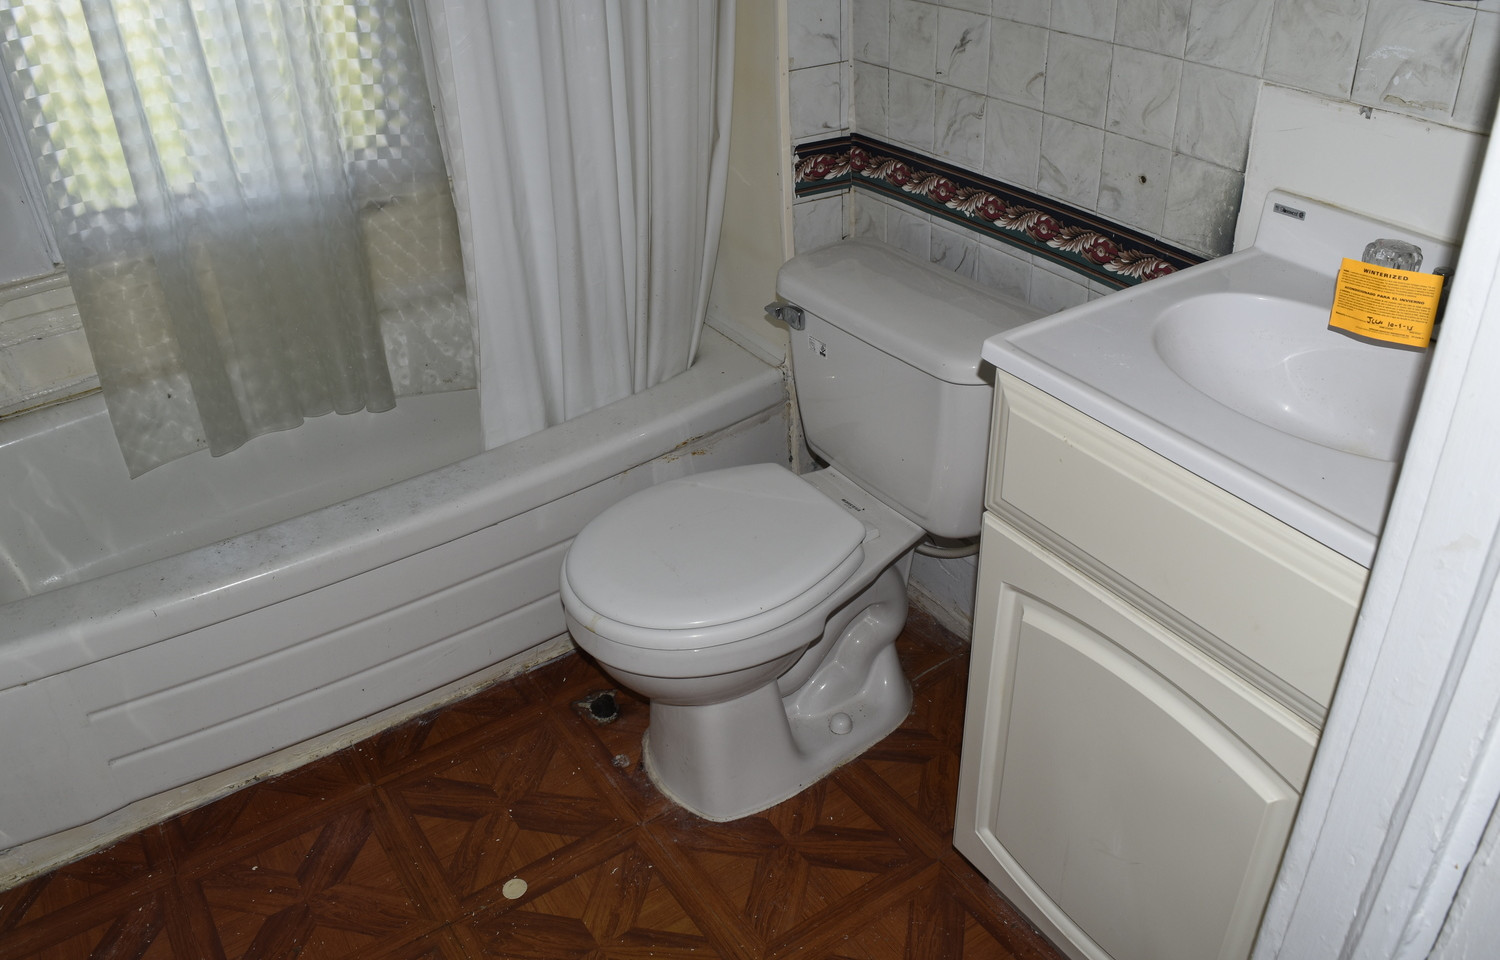 13.0 Apartment 1 Bathroom.jpg